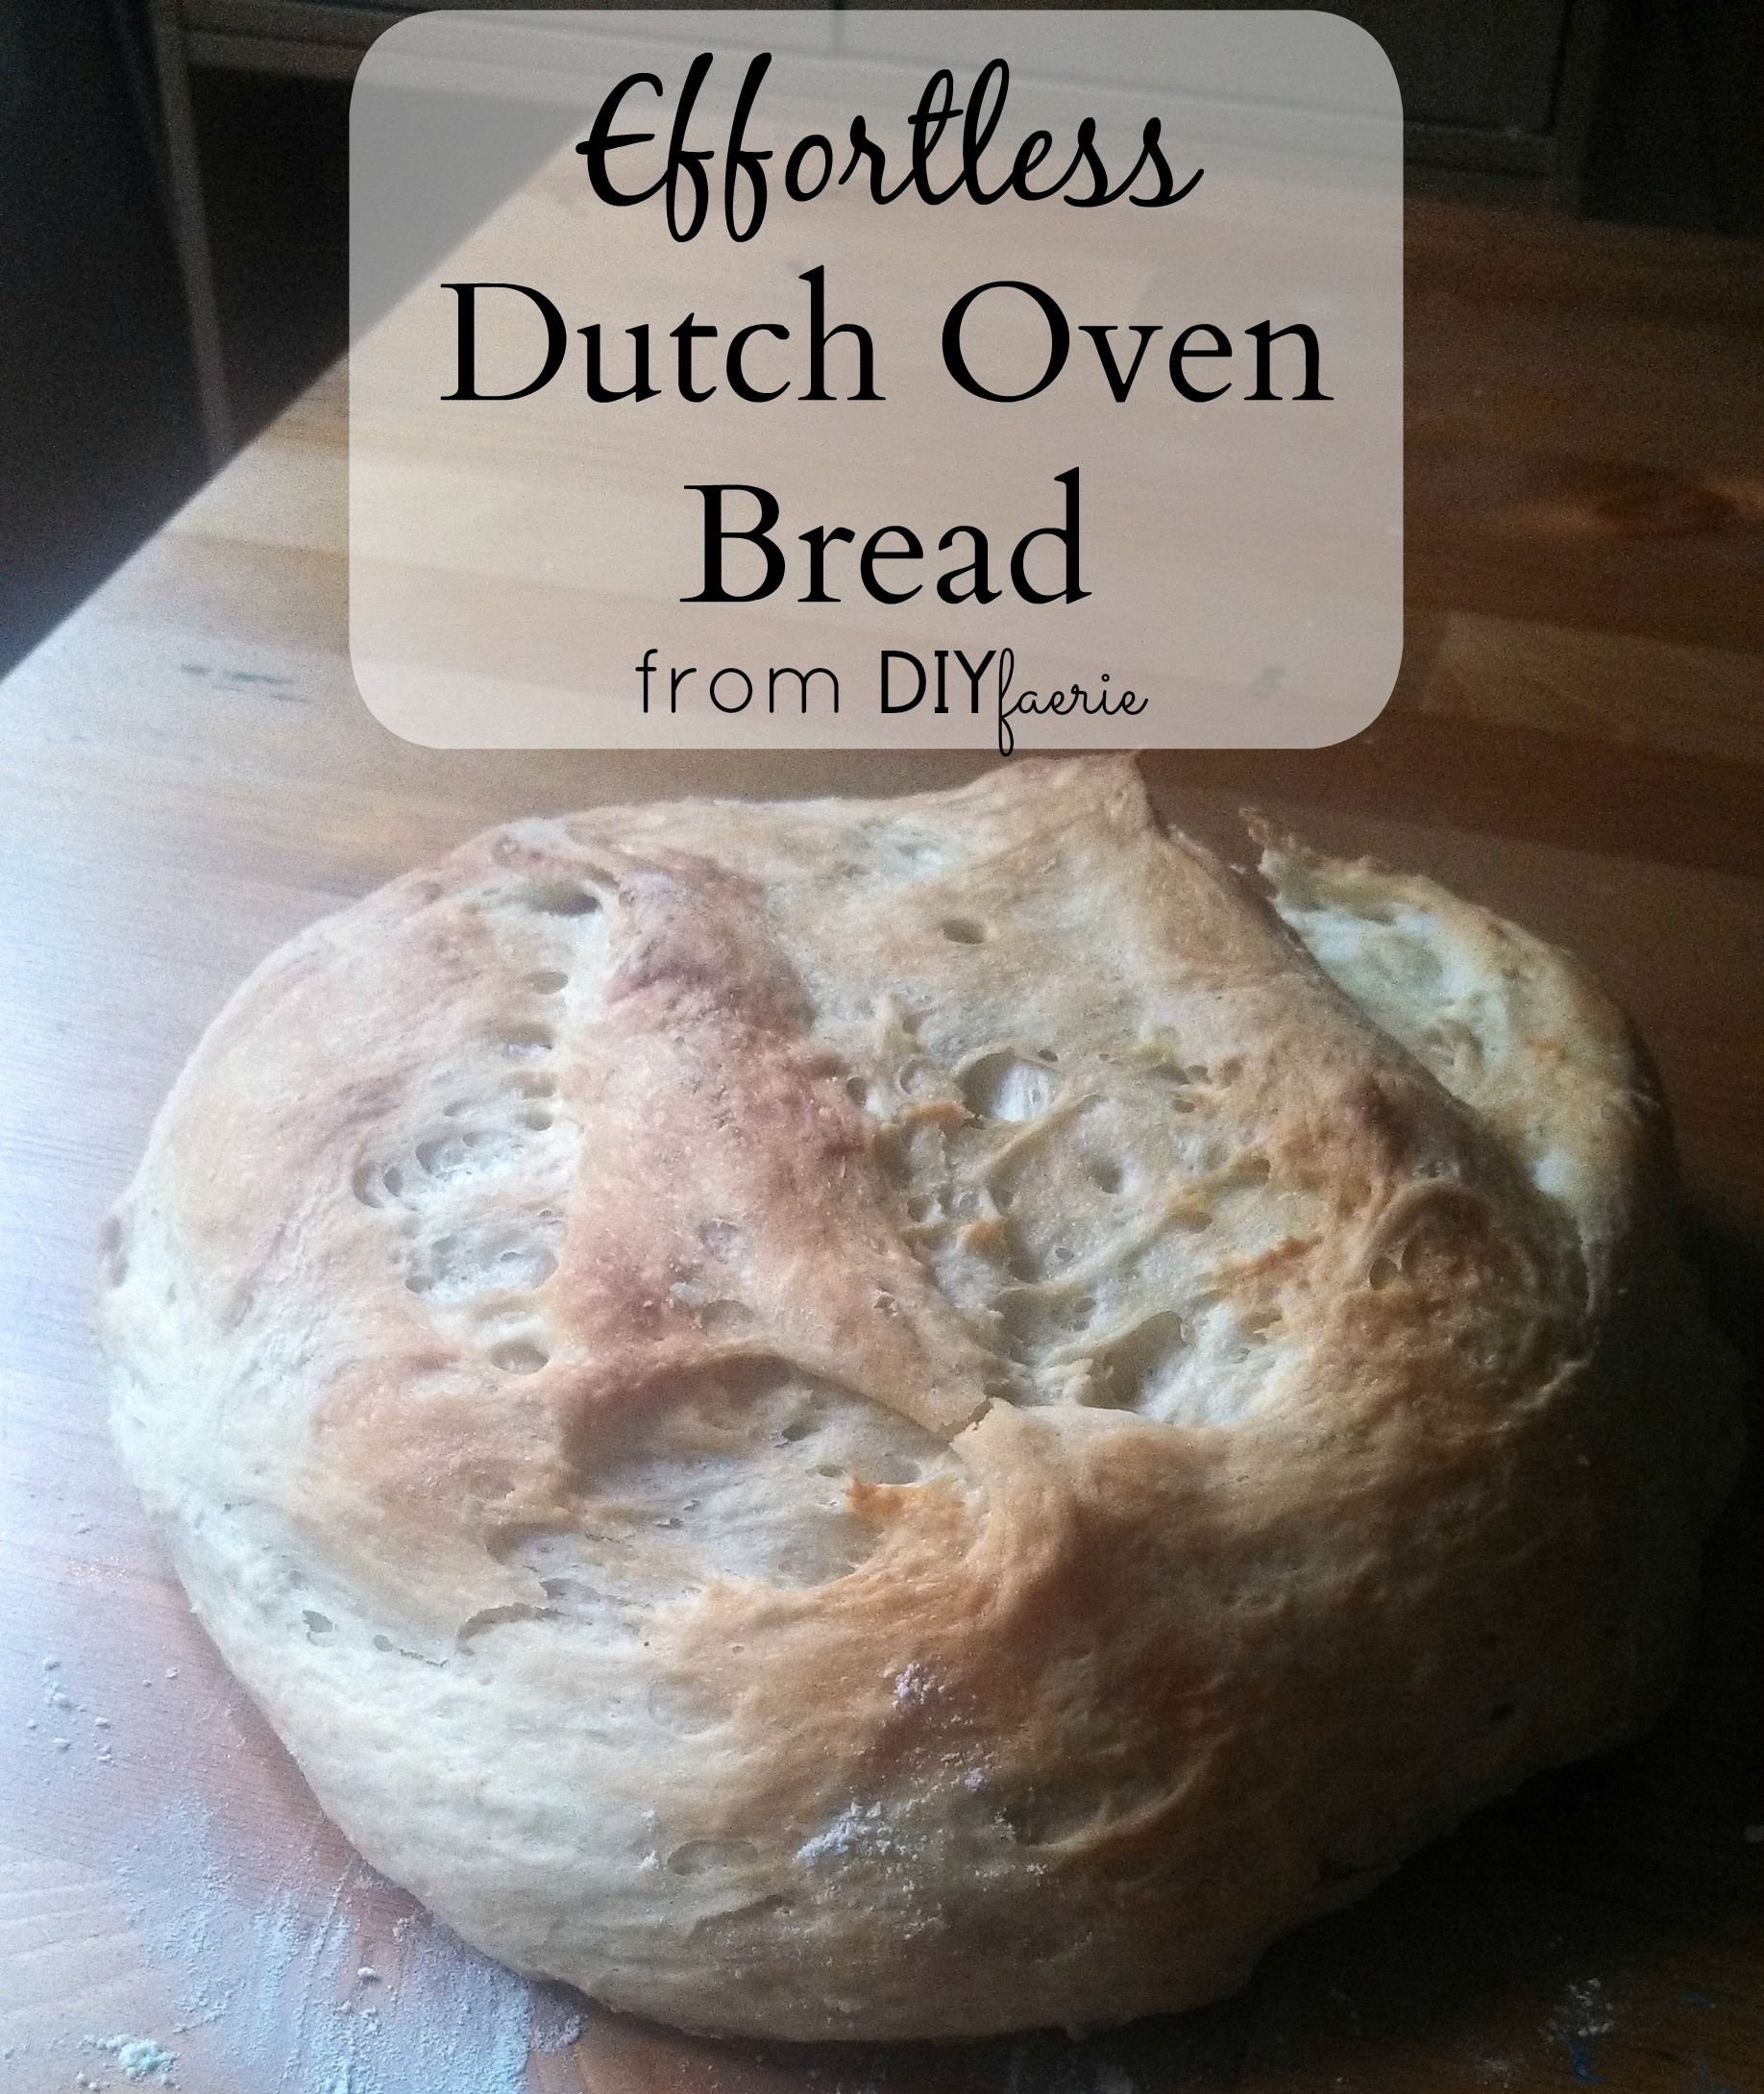 Even if you're just a little bit scared of yeast breads like I am this one will have you feeling like a bread making pro in no time! Easy and delicious!